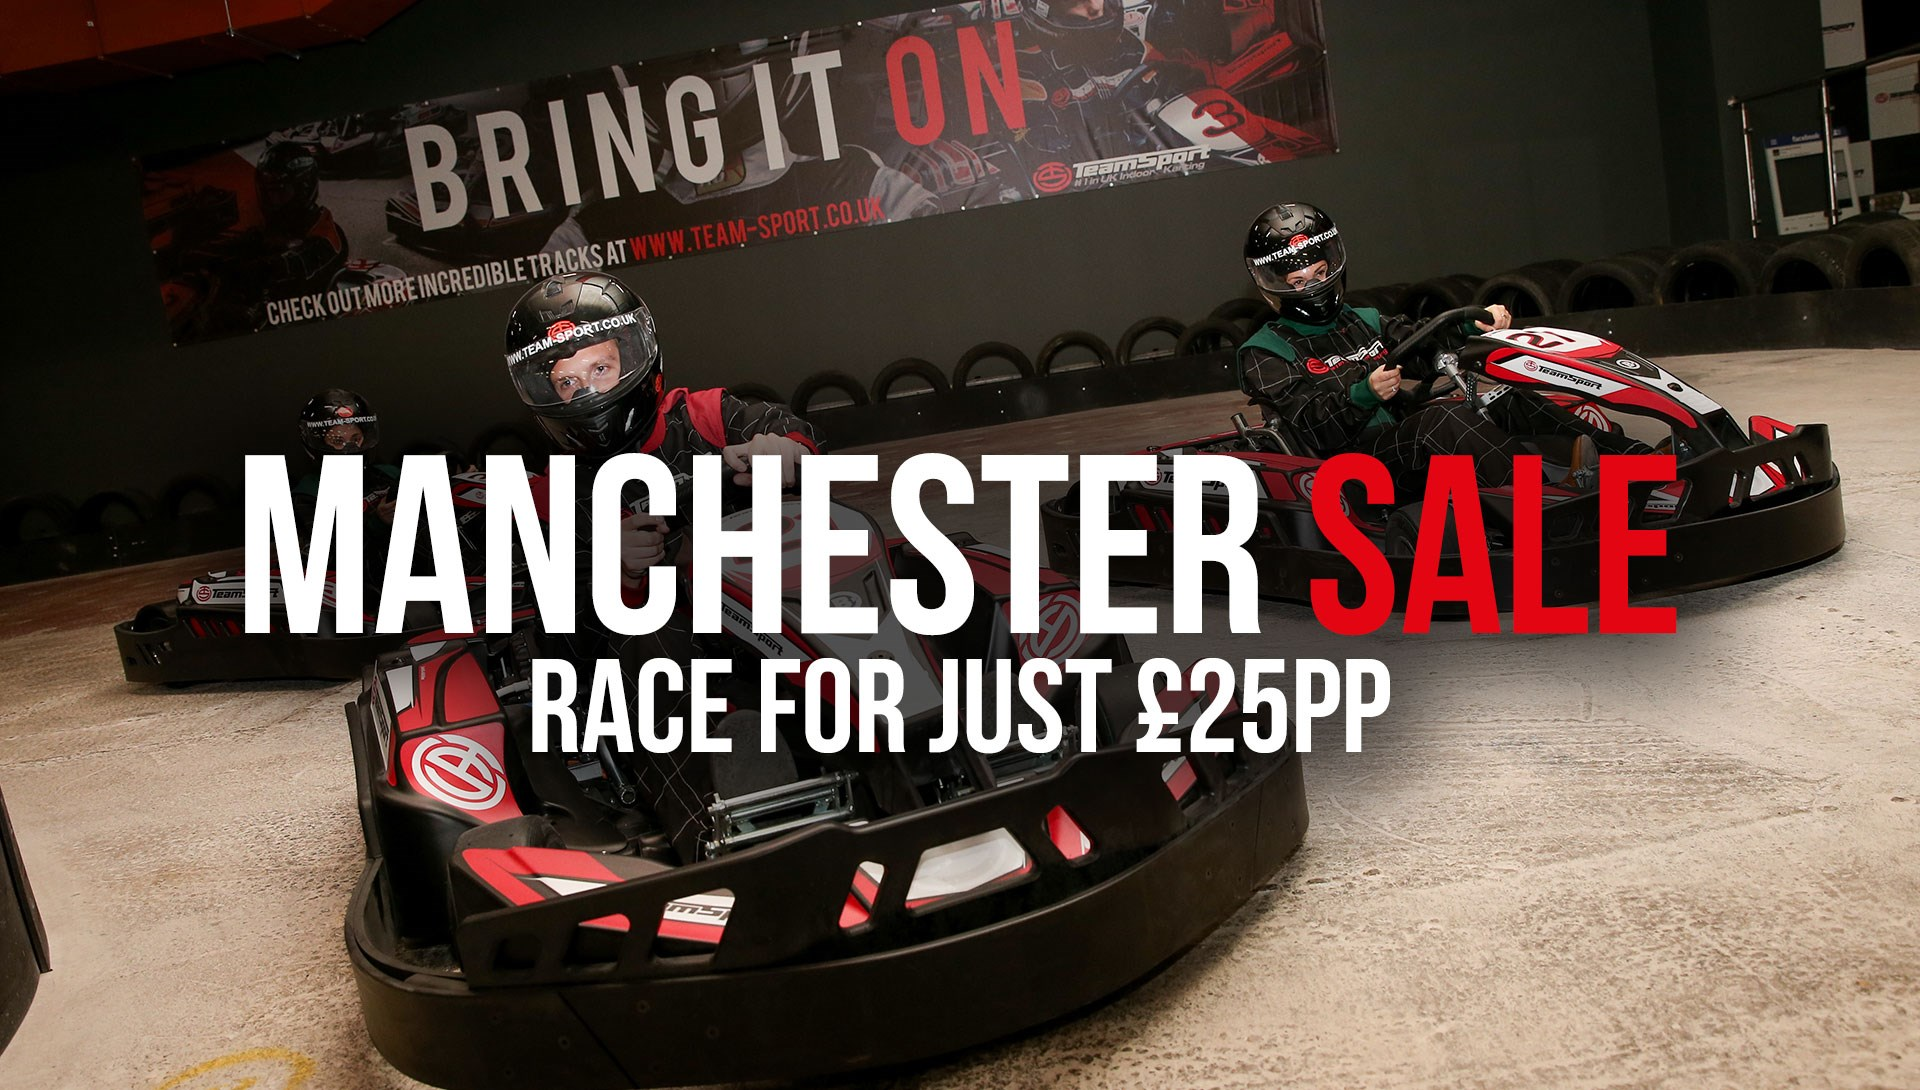 GO KARTING OFFERS - Manchester £25 Sale